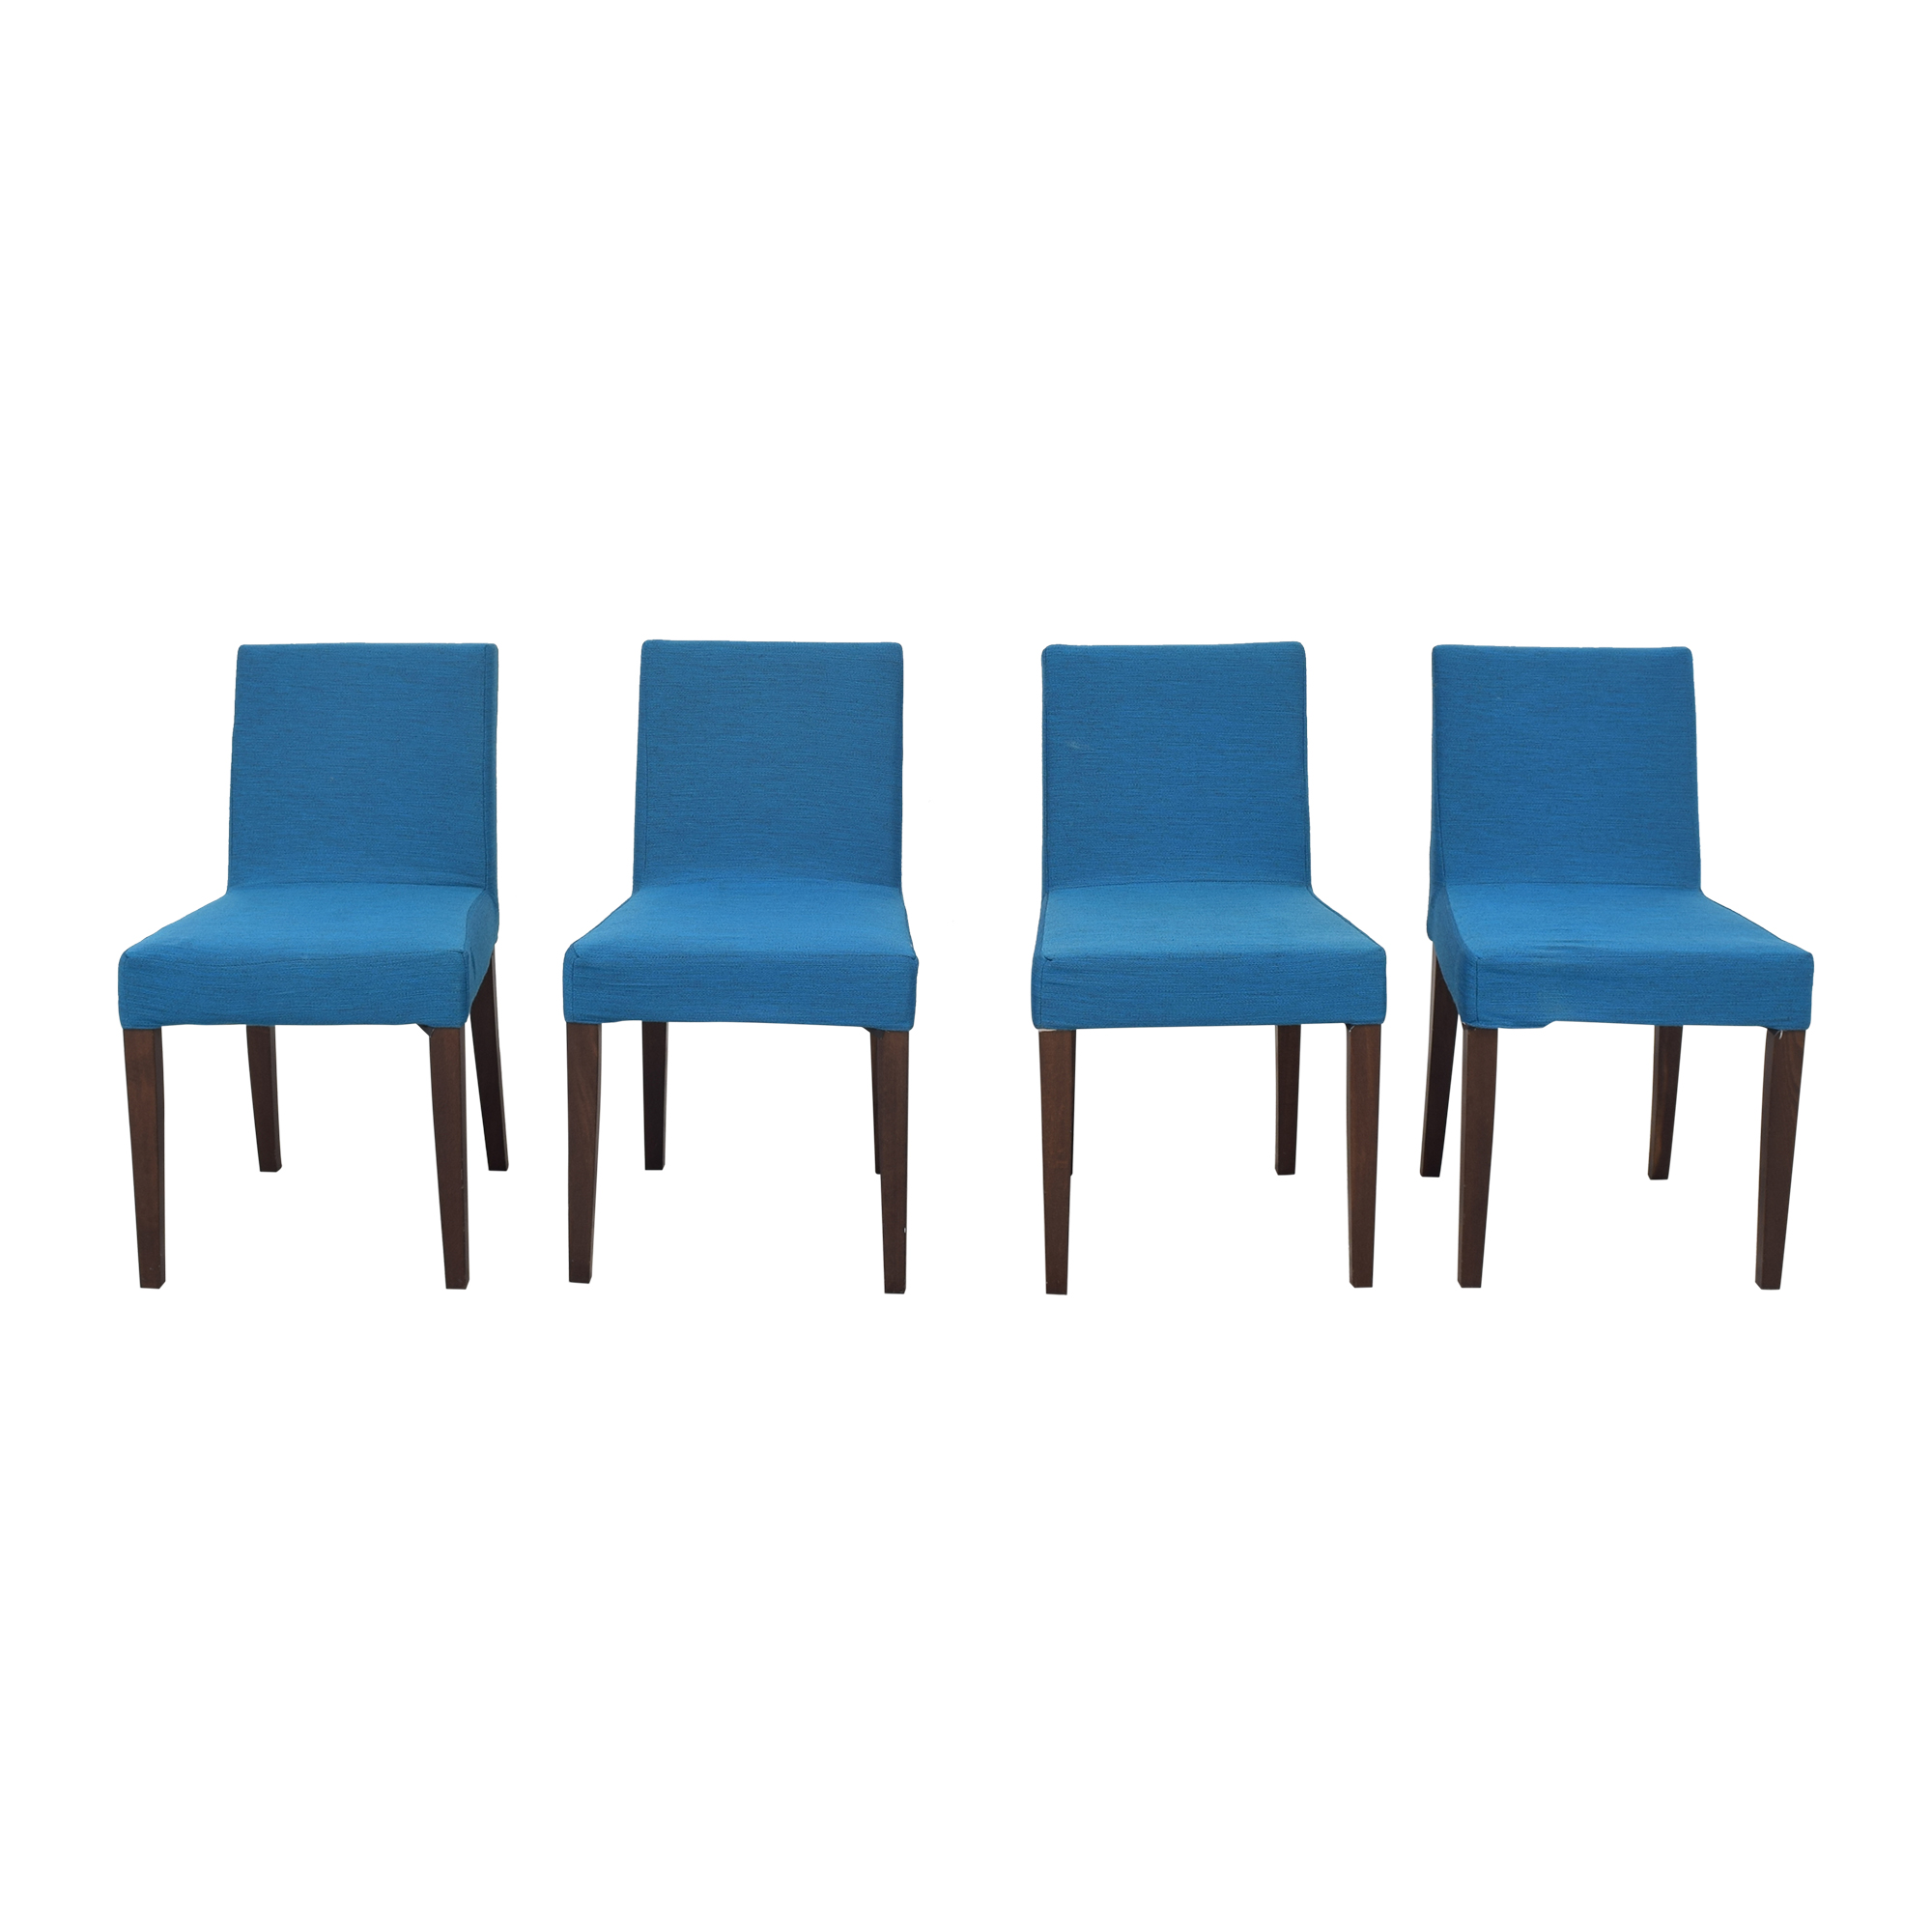 Ligne Roset Ligne Roset Didier Gomez French Line Dining Chairs coupon